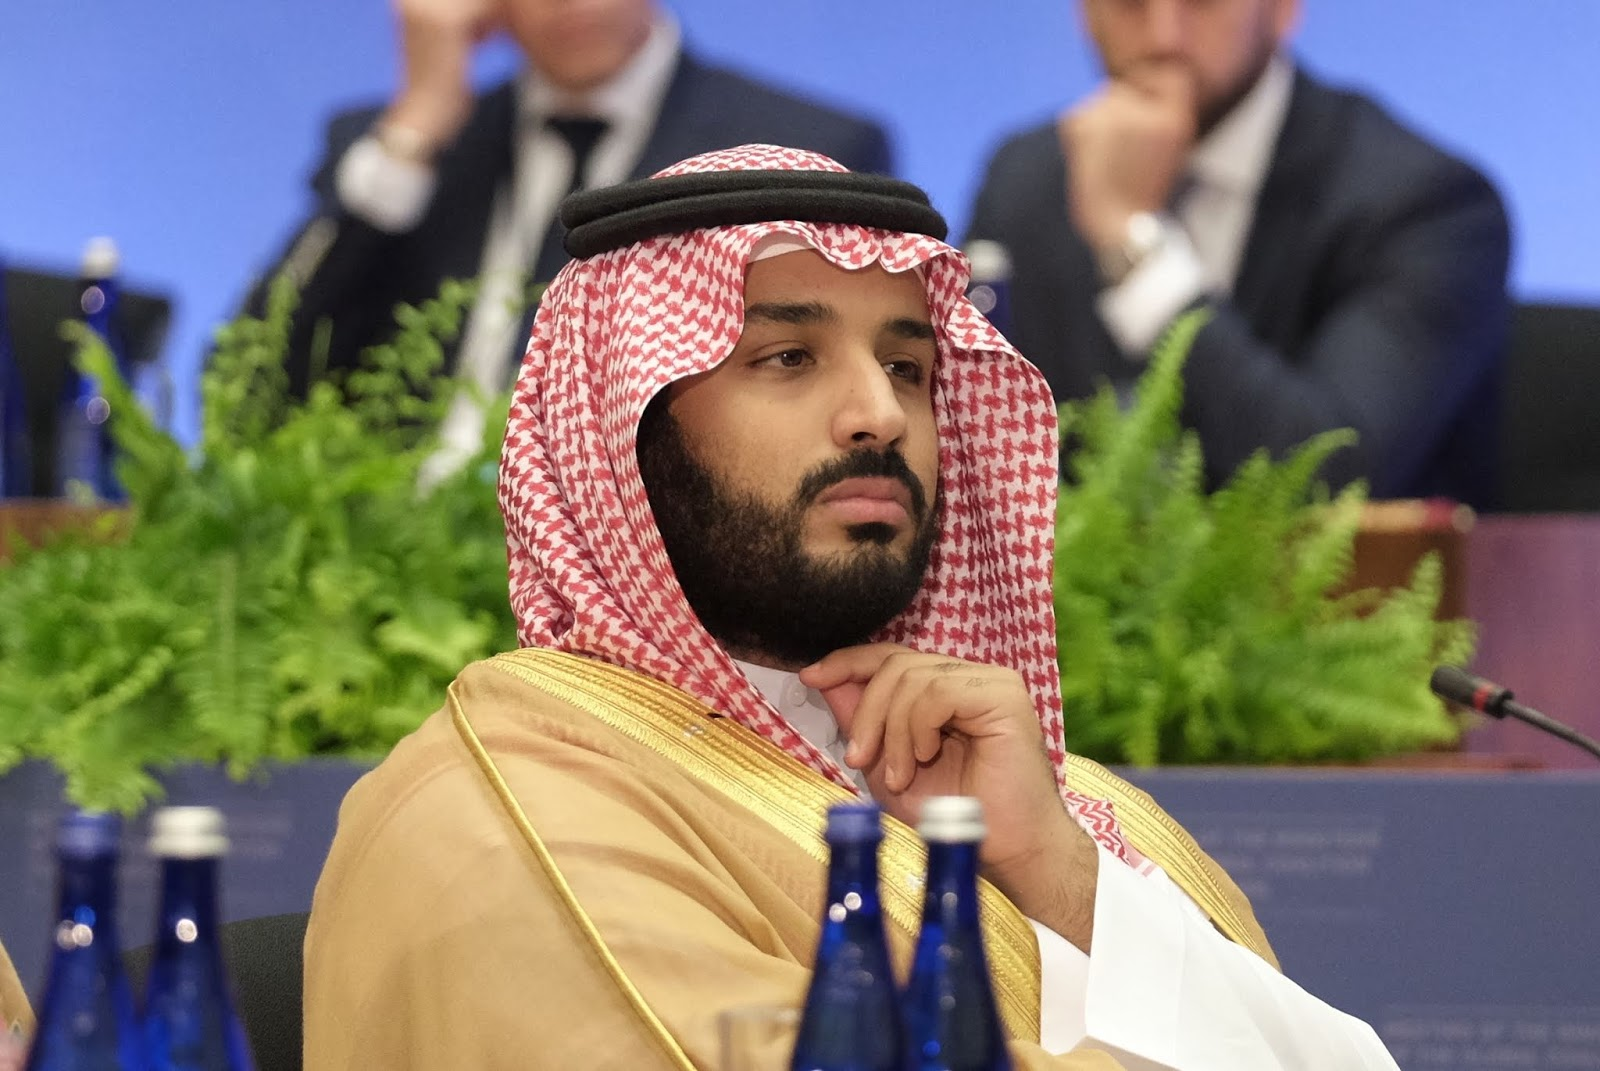 CIA Says Saudi Crown Prince Behind Khashoggi Murder: Reports